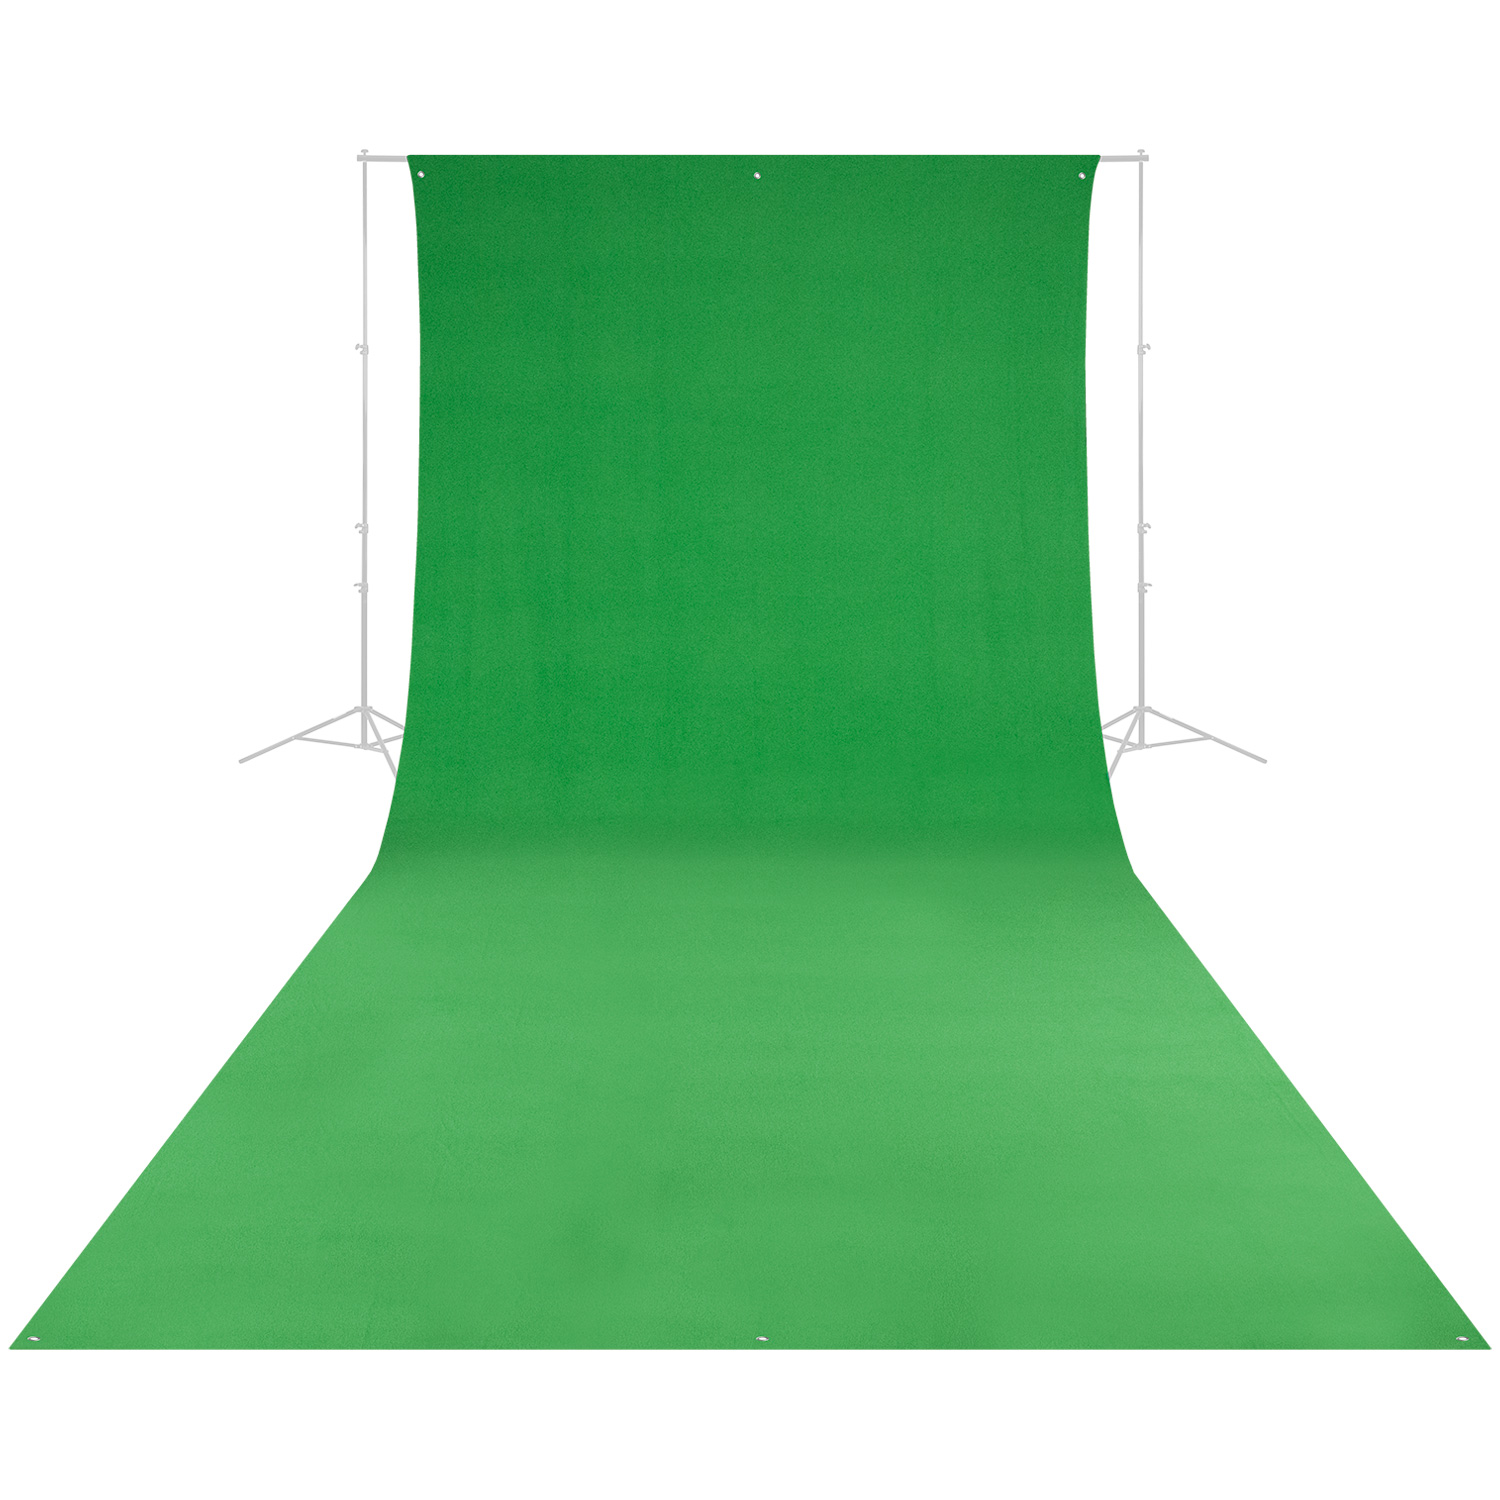 Wrinkle-Resistant Backdrop - Chroma-Key Green Screen (9' x 20')